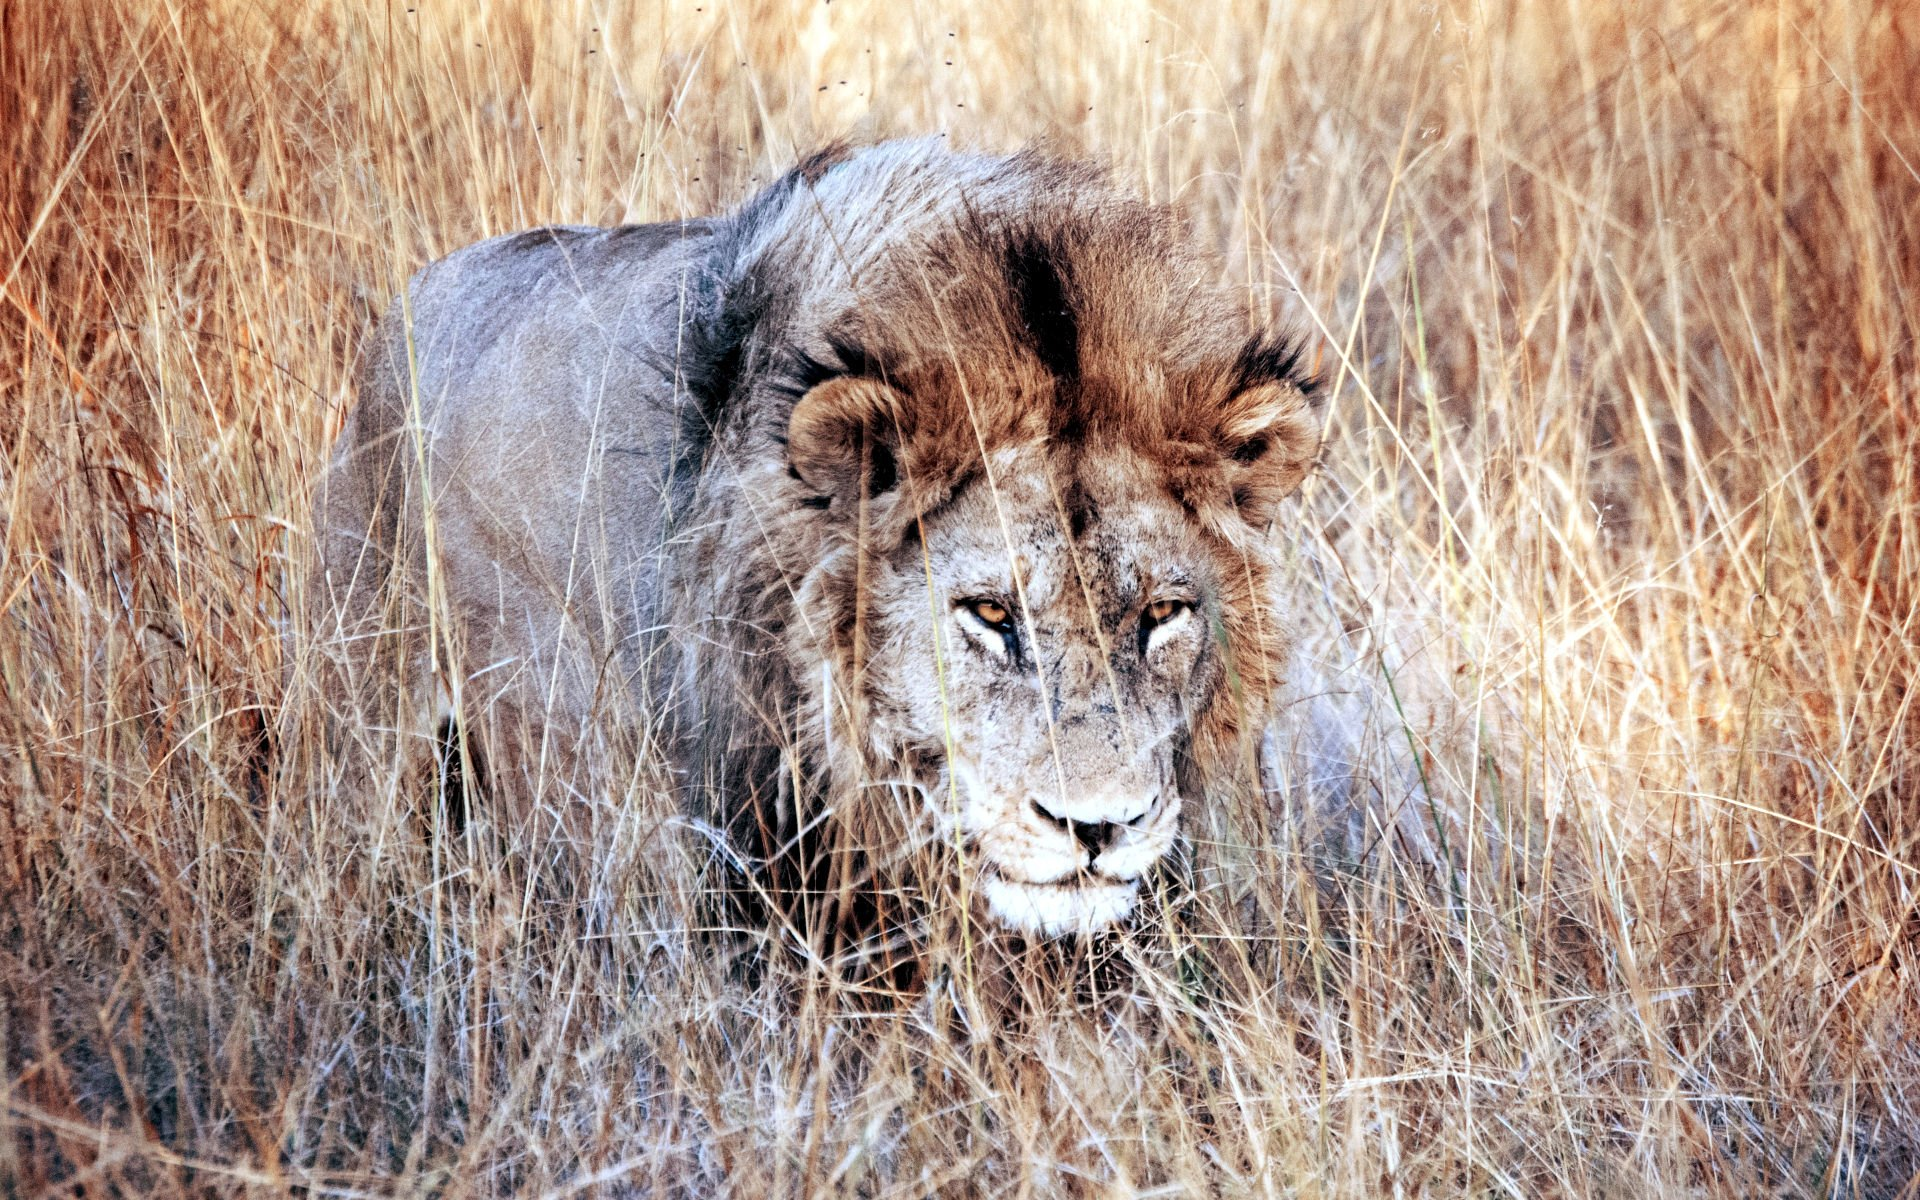 Places to spot Lions: Amboseli National Park, Meru National Park, Samburu National Reserve, and Masai Mara National Park in Kenya.